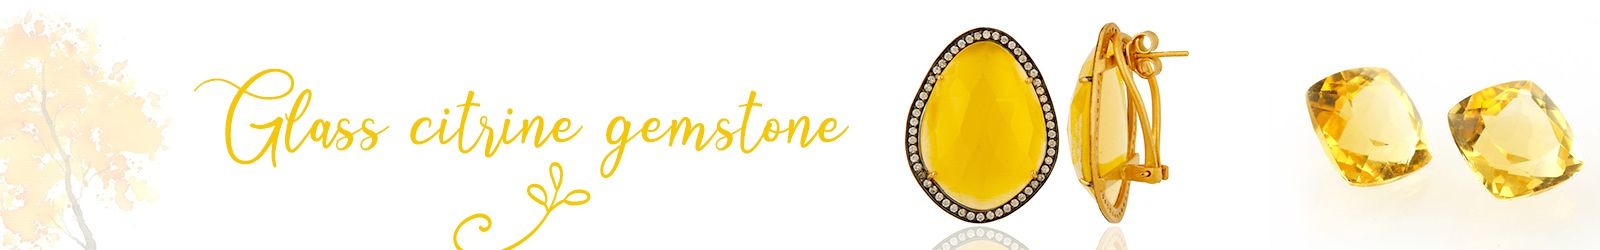 Citrine Glass Gemstone Jewelry Manufacturer, Supplier in Jaipur